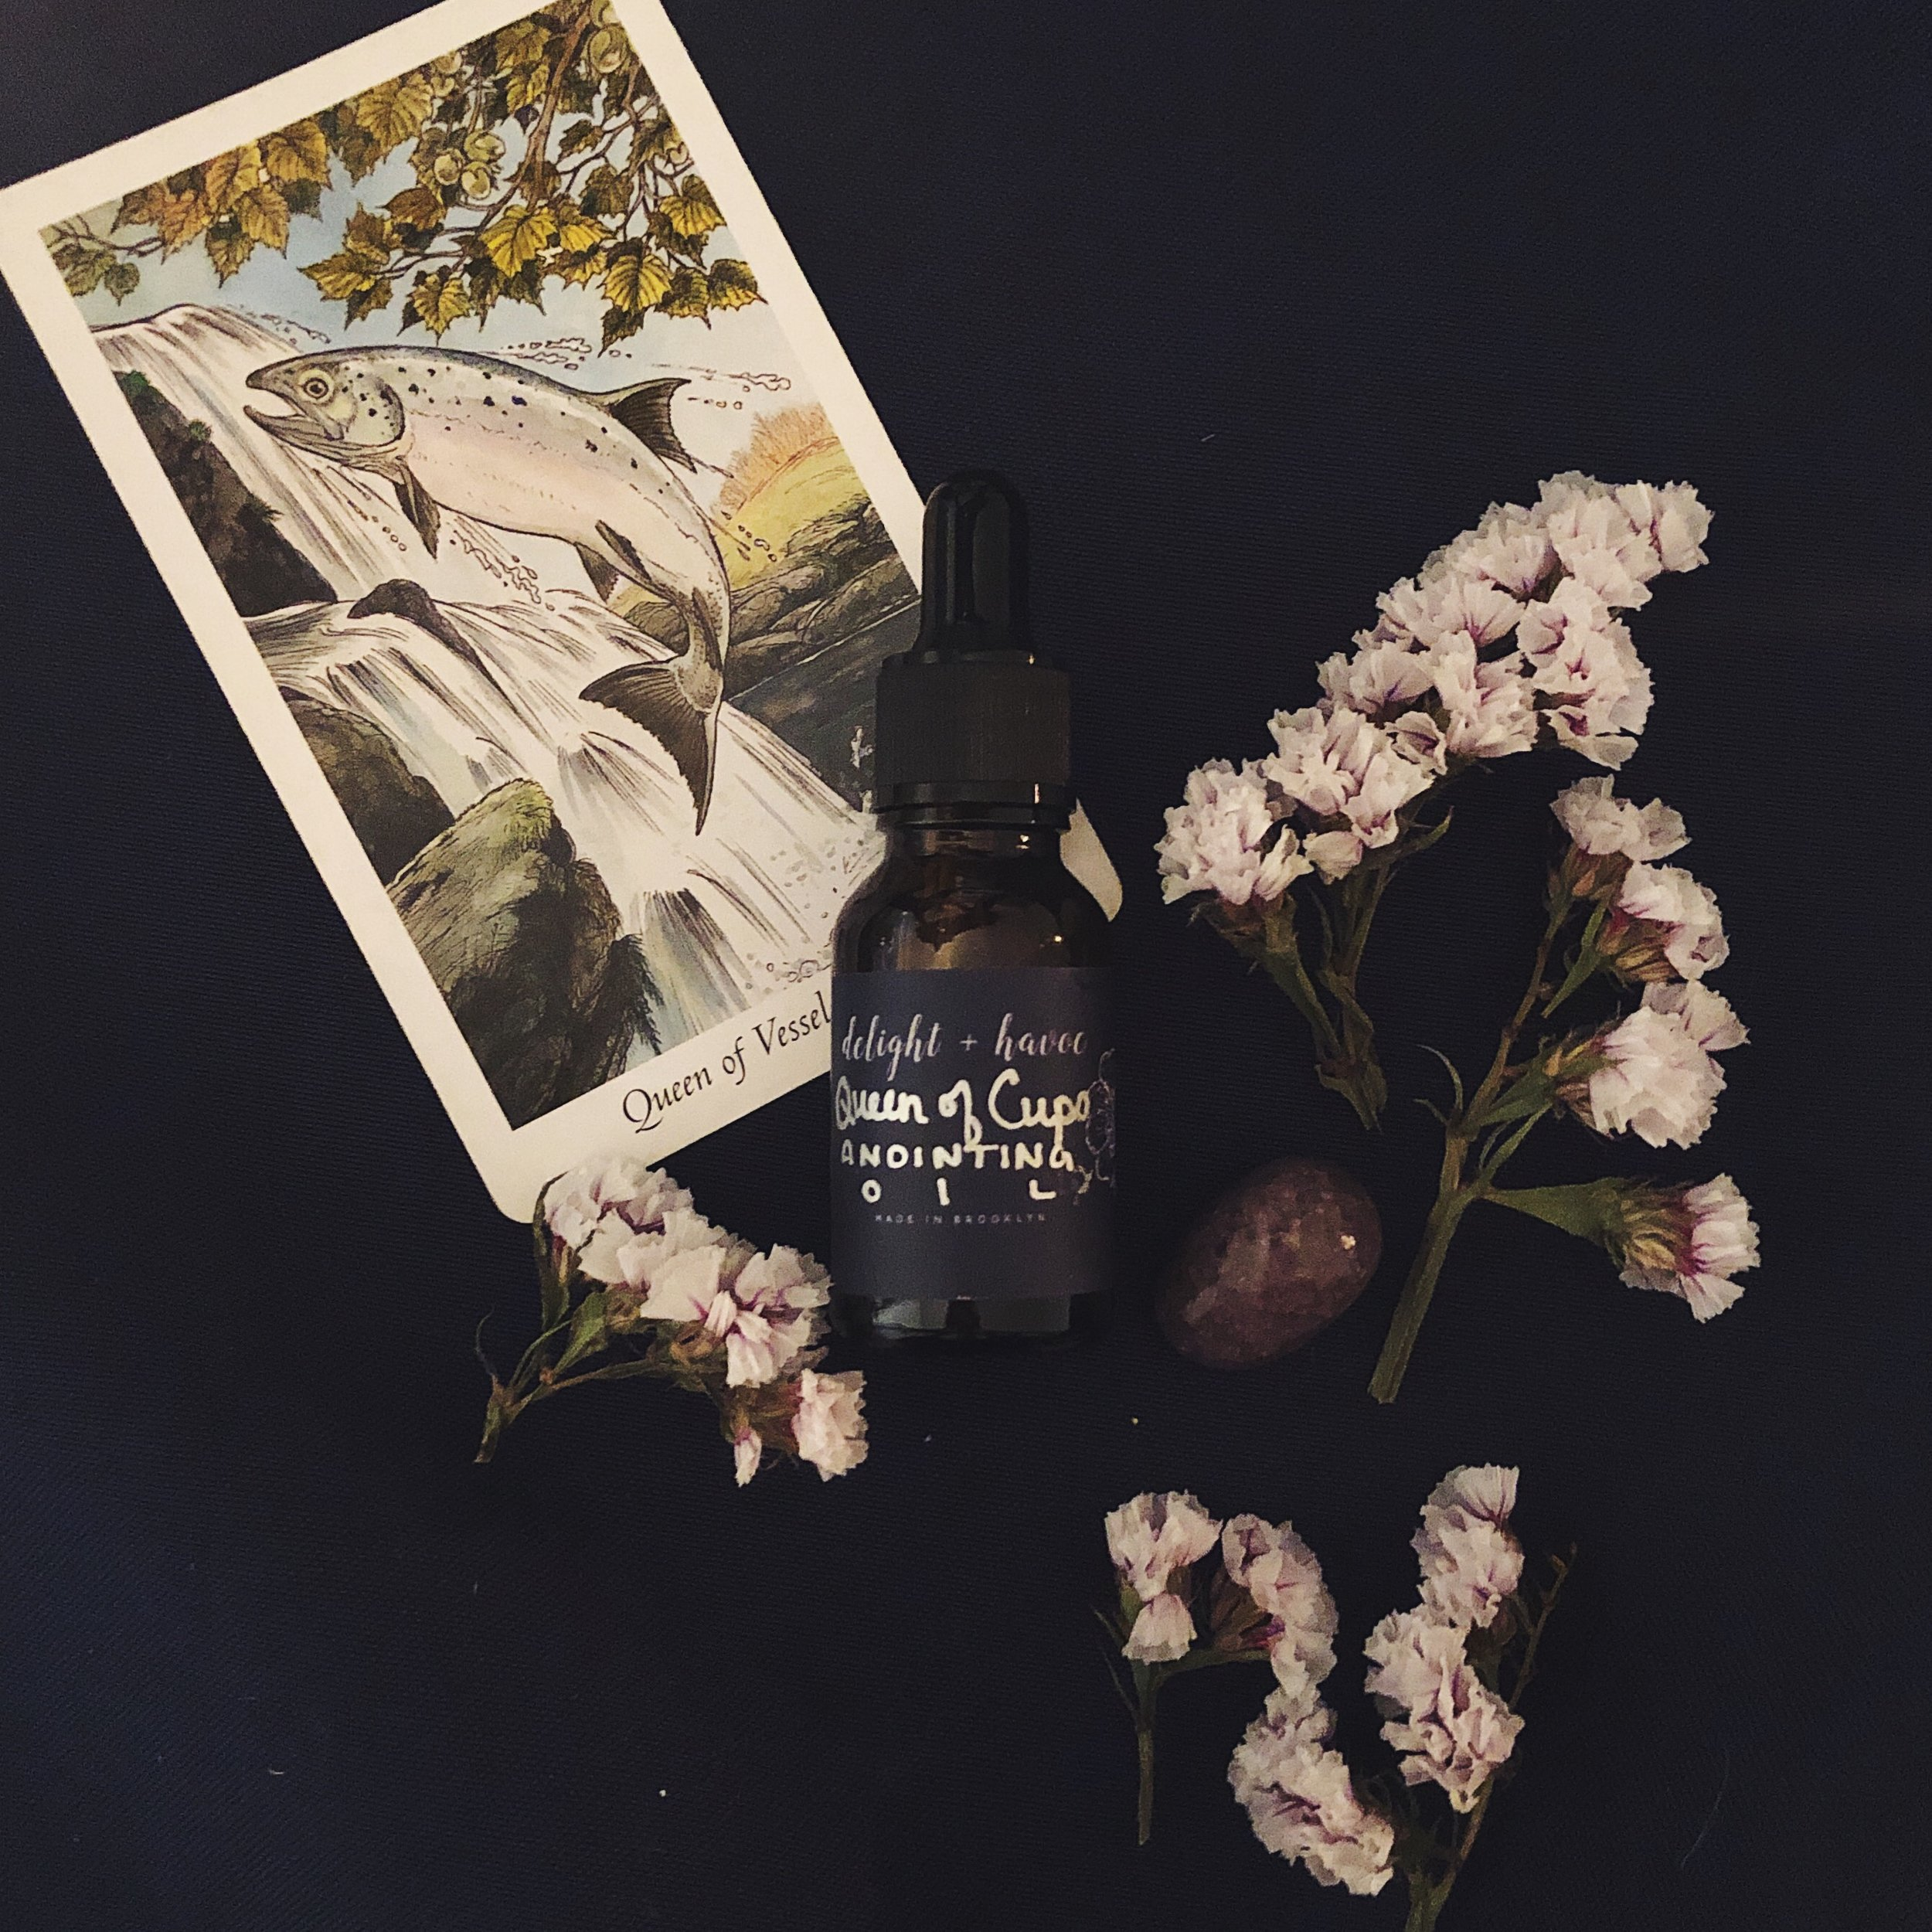 QUEEN OF CUPS - Crafted over one moon cycle during Libra season with the Queen of Cups tarot card and charged and blessed on the November 2018 Dark Moon in Scorpio, our QUEEN OF CUPS Anointing Oil is imbued with herbs and flowers that help protect and fortify your powerful and sensitive heart. Several of our customers have said it's like a warm hug in a bottle.Perfect for:- Heart healing & fortification- Courage- Empathic protection and support- Self love- Can also be used to aid in strengthening your resolve in uncrossing work (though not necessarily for the work itself)